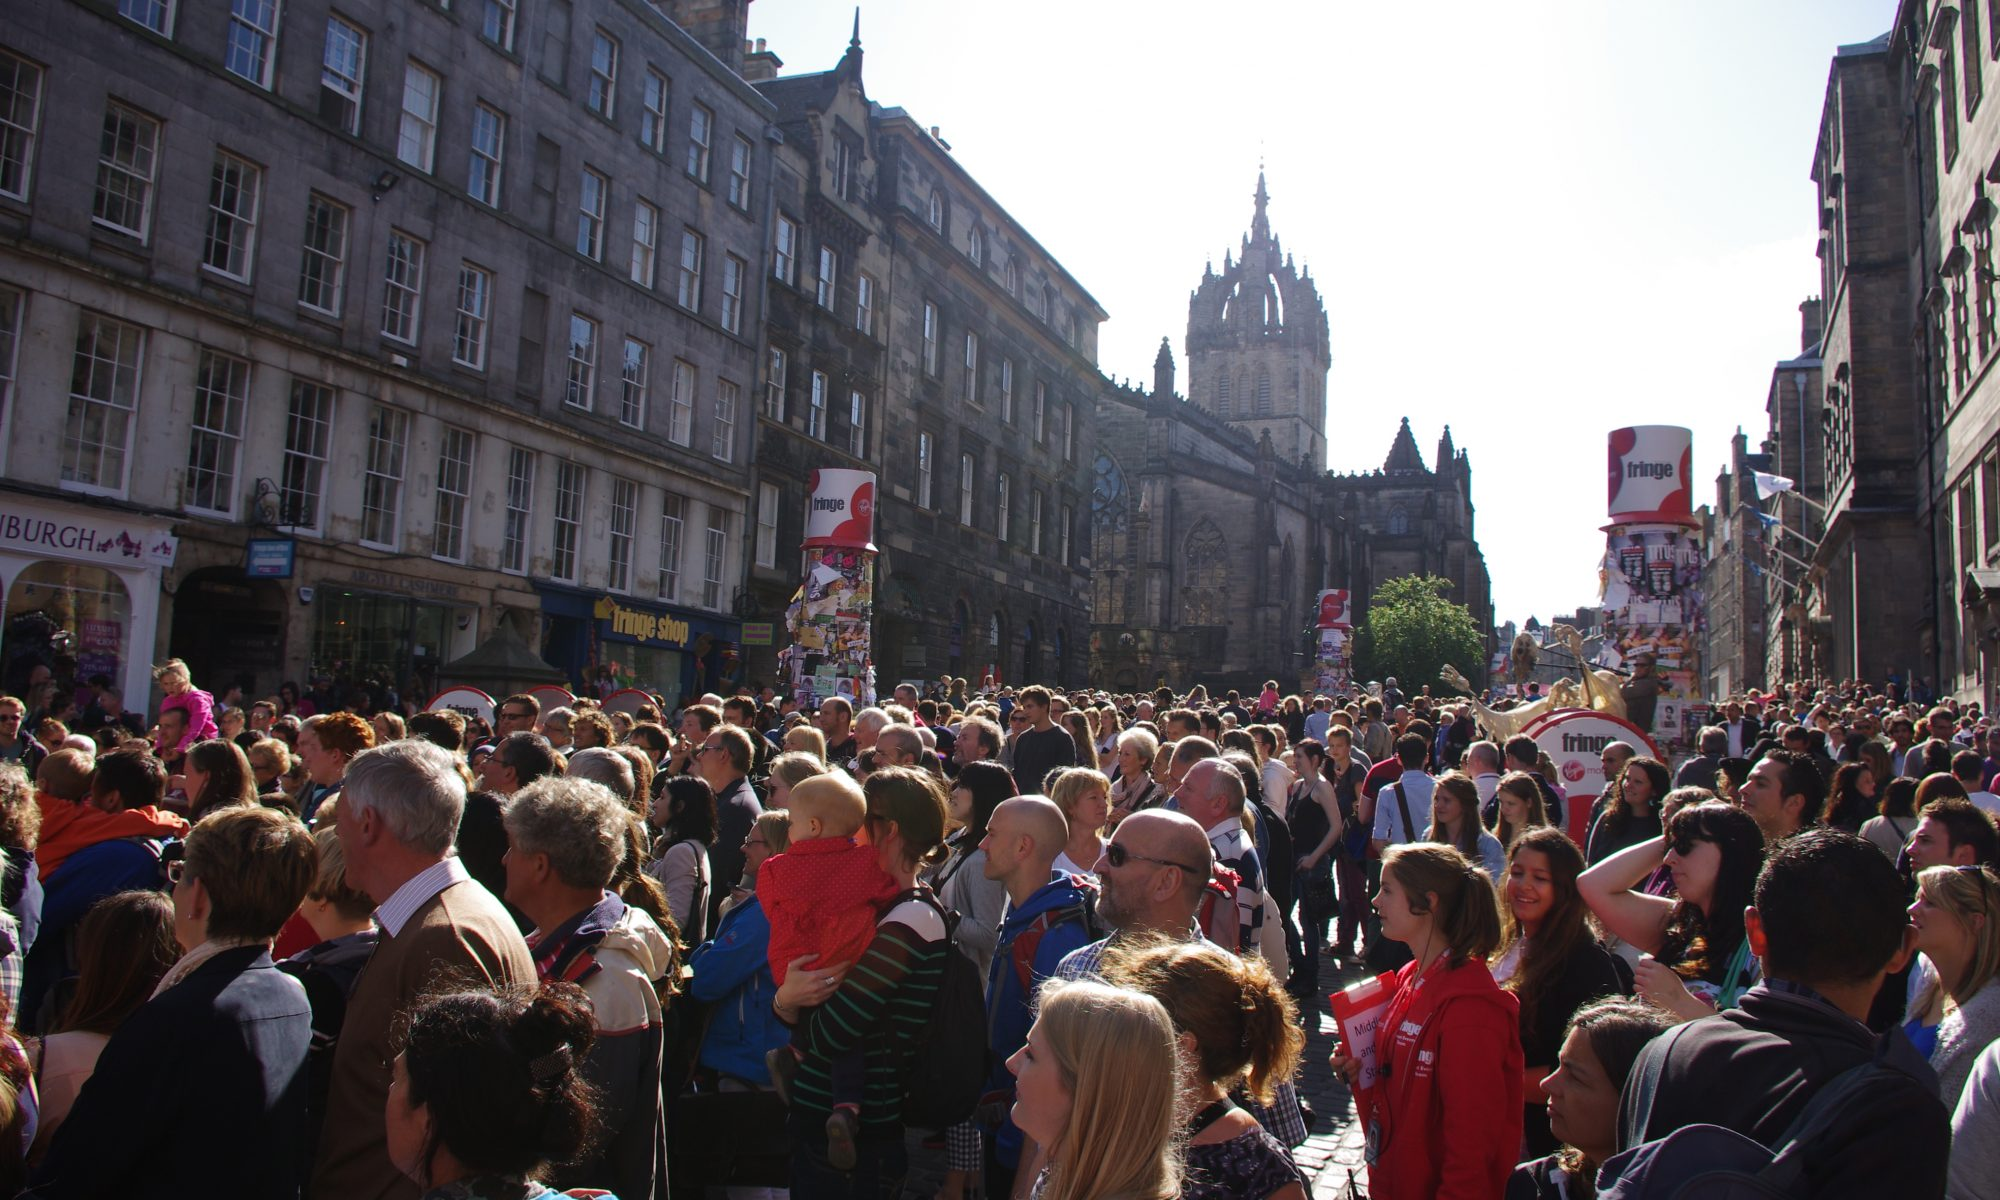 Cultural tourists at the heart of Edinburgh